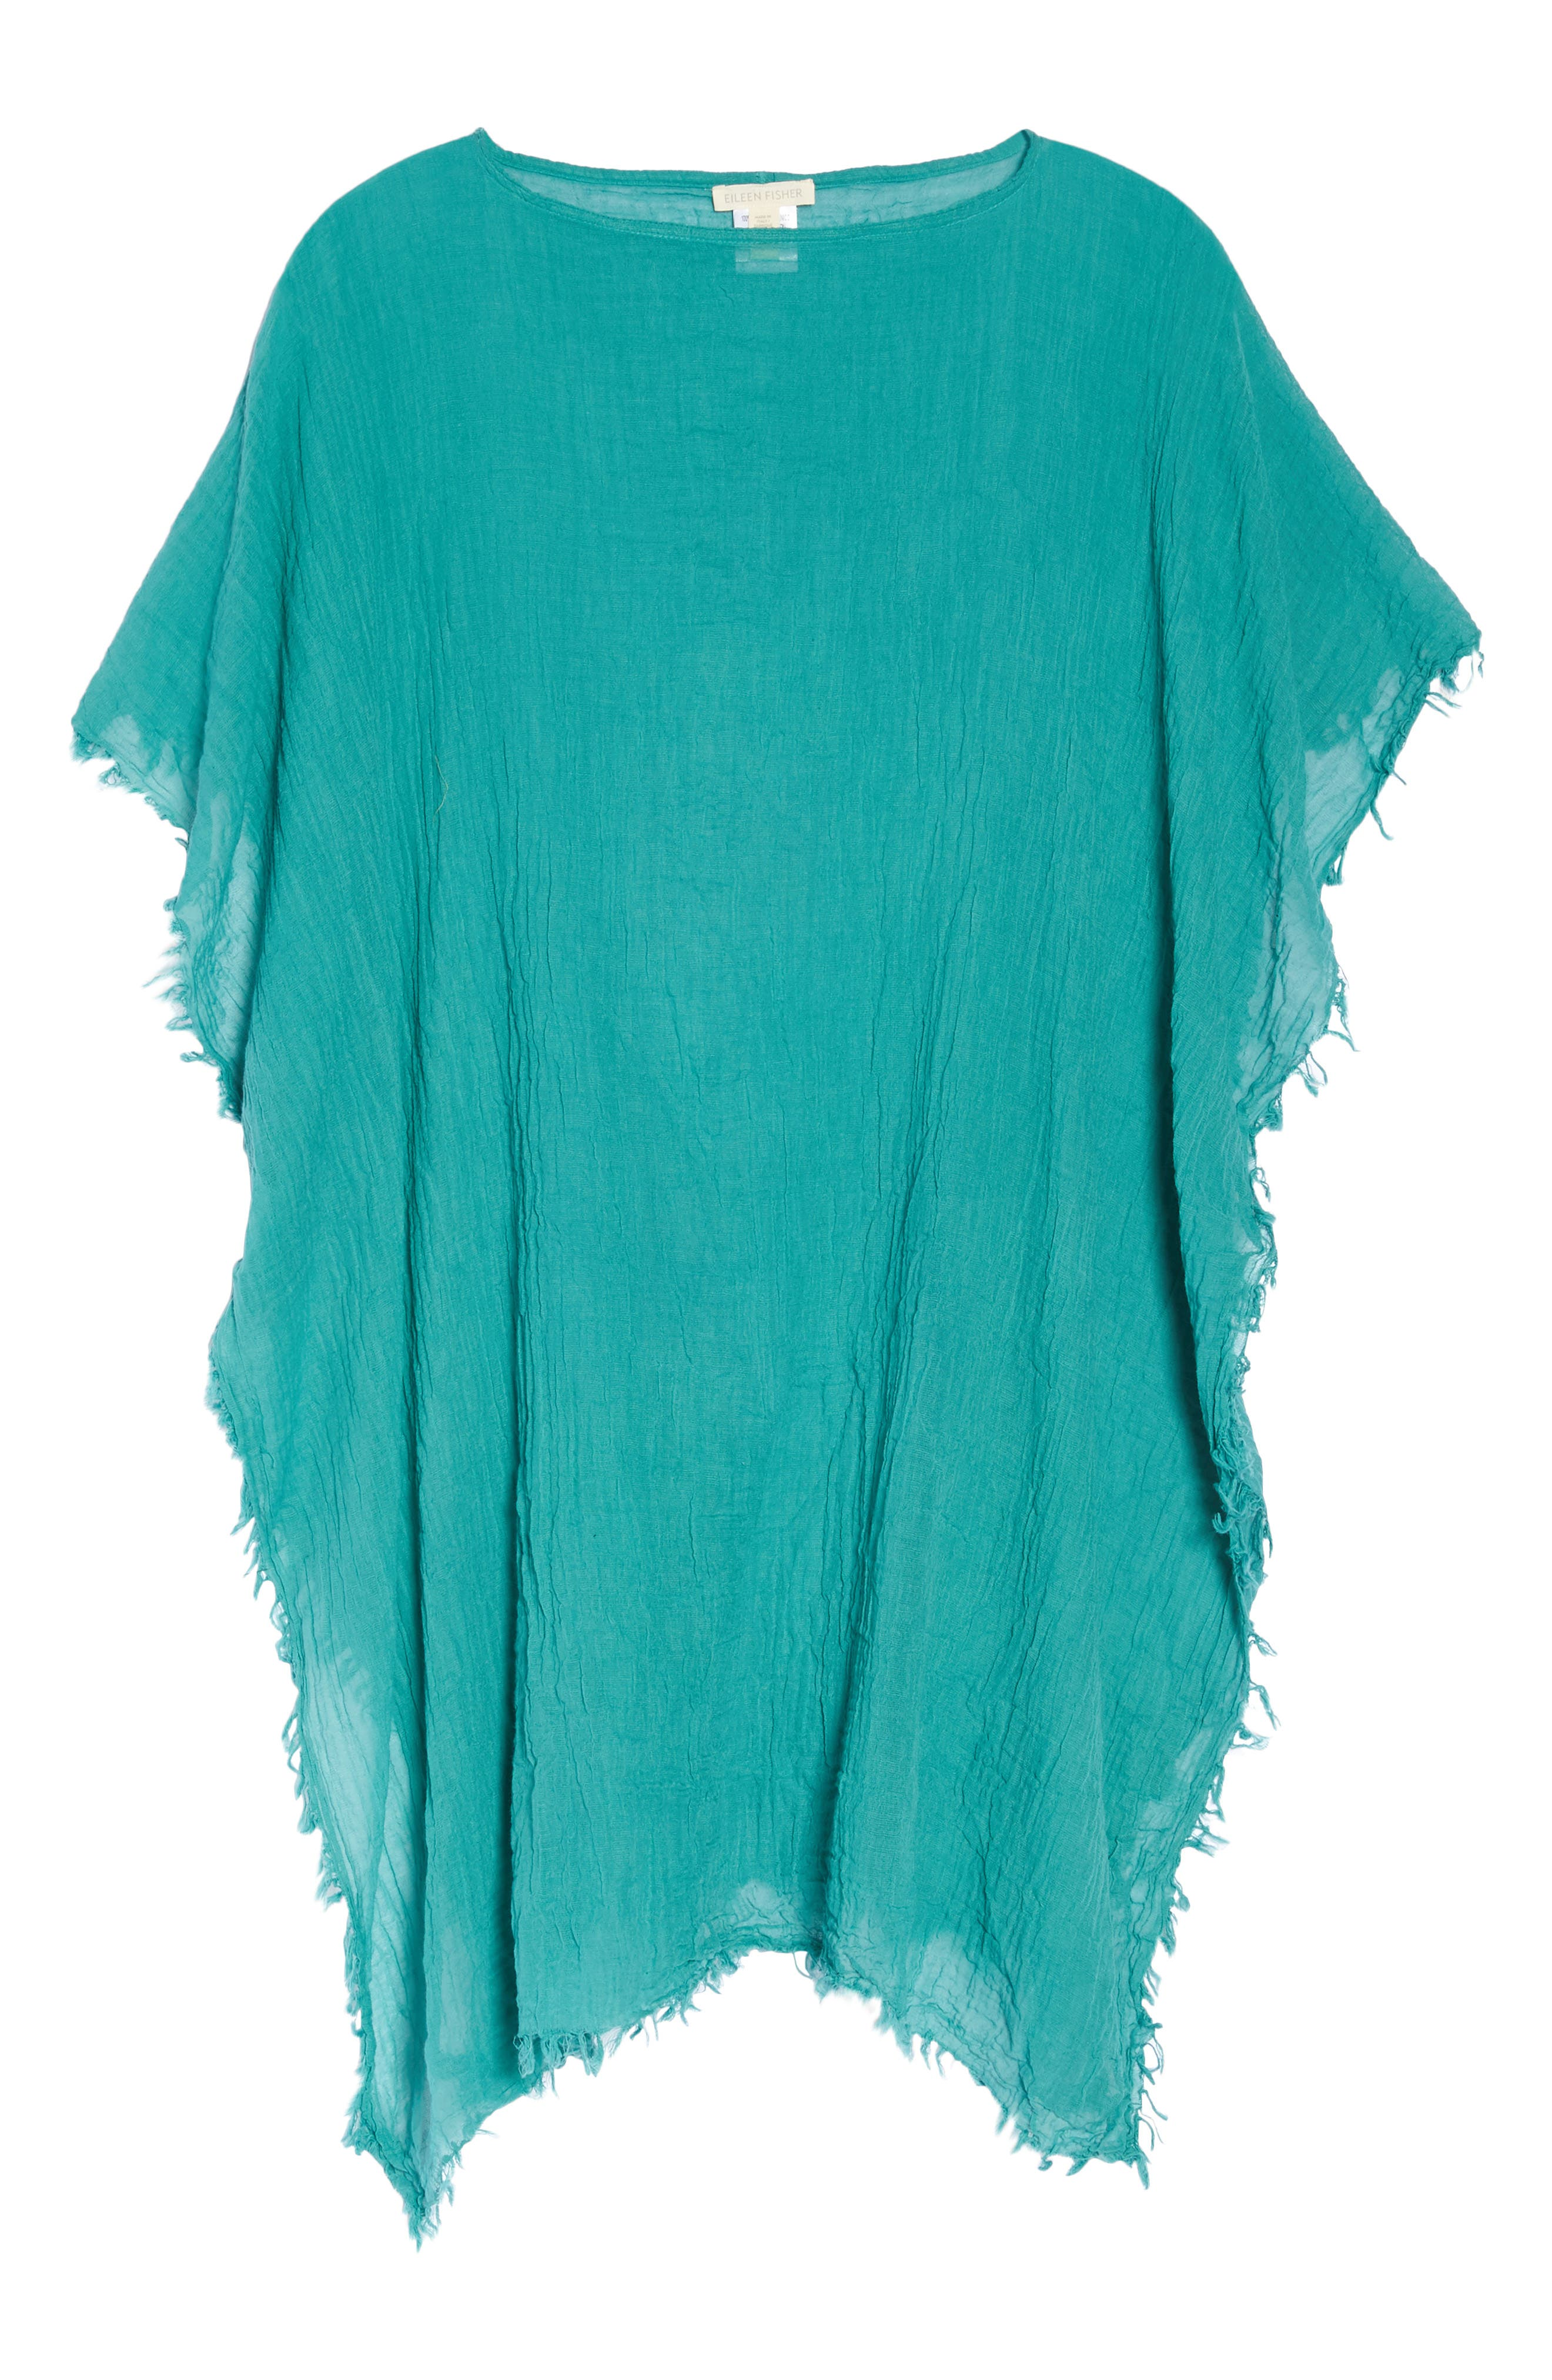 Organic Cotton Poncho,                             Alternate thumbnail 7, color,                             Turquoise